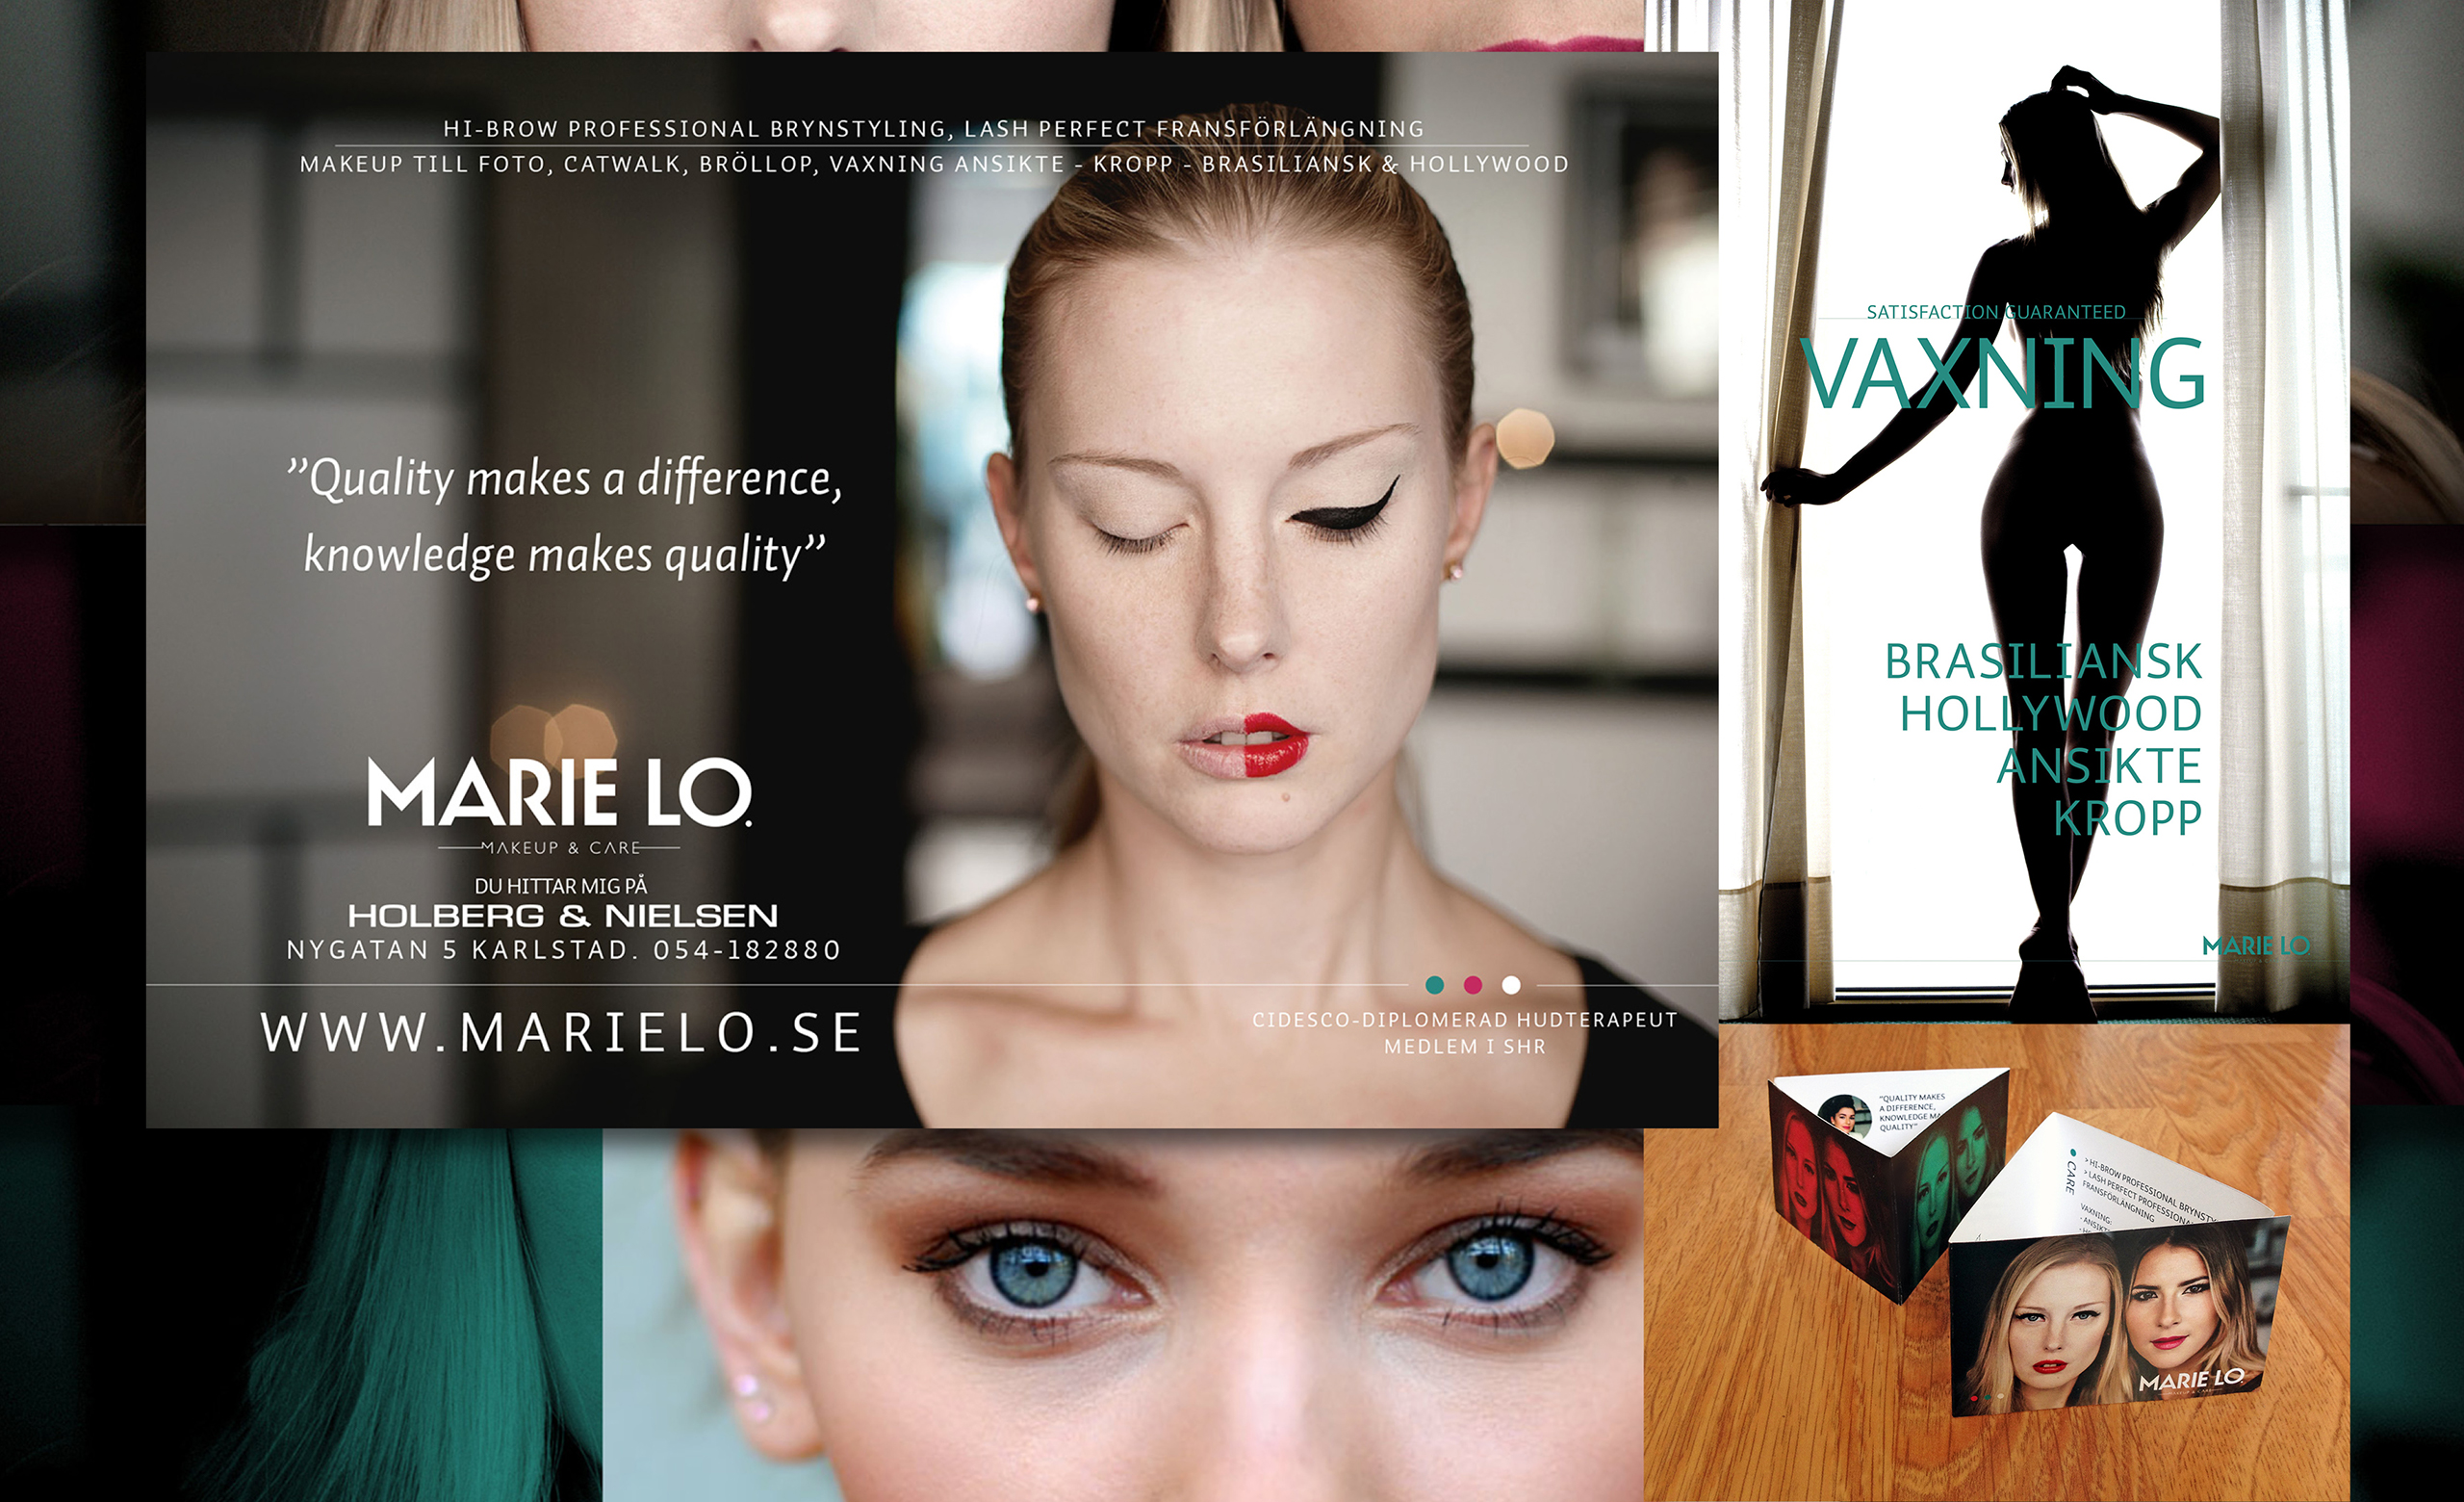 Marie Lo - Makeup and Care